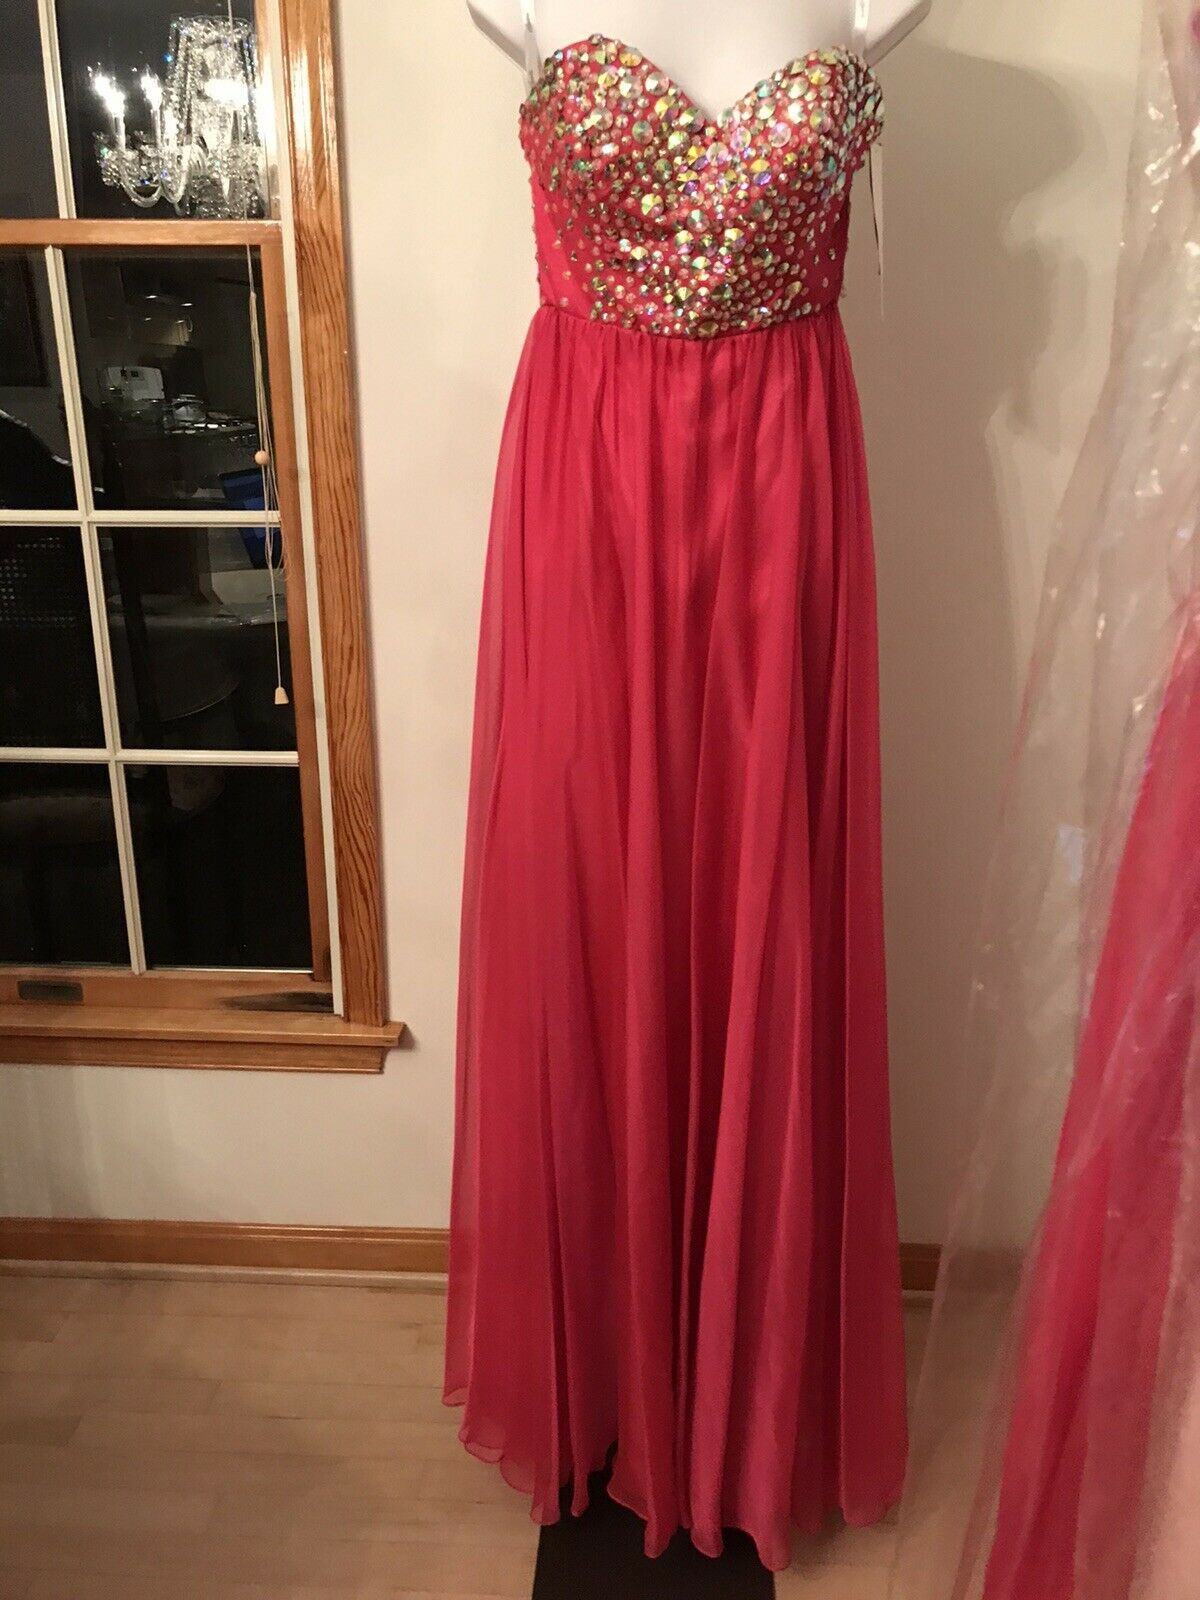 New Sparkle Formal Gown with Beaded Top - Size 6